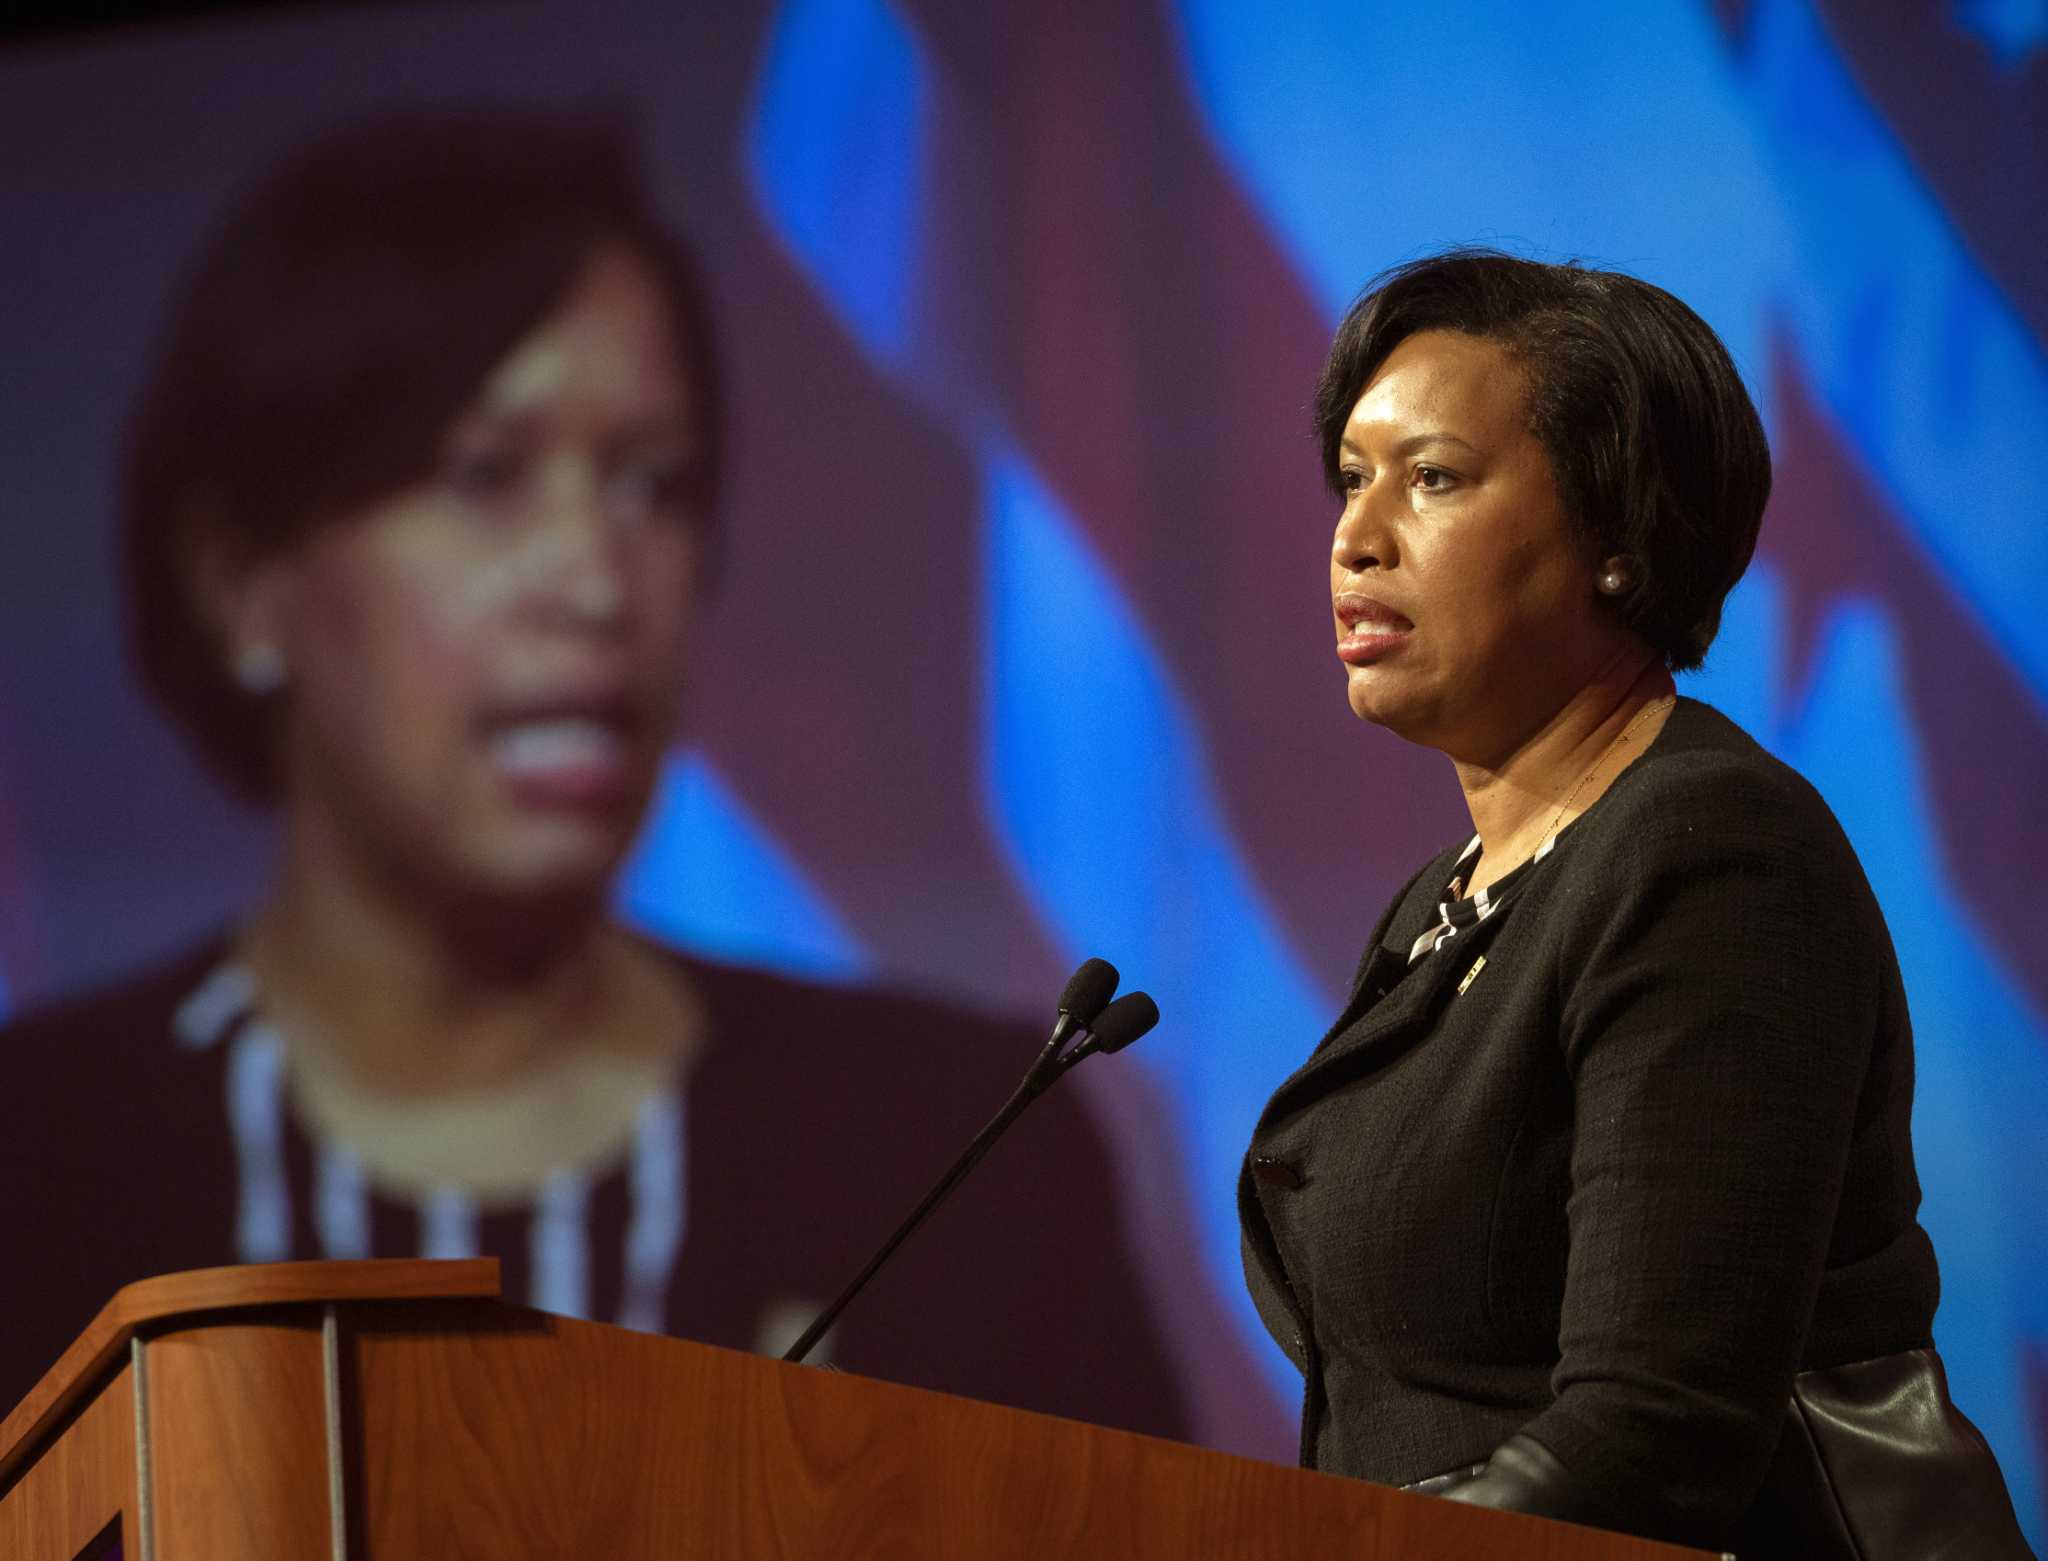 D.C. mayor takes national spotlight in preparing for inauguration, making case for statehood